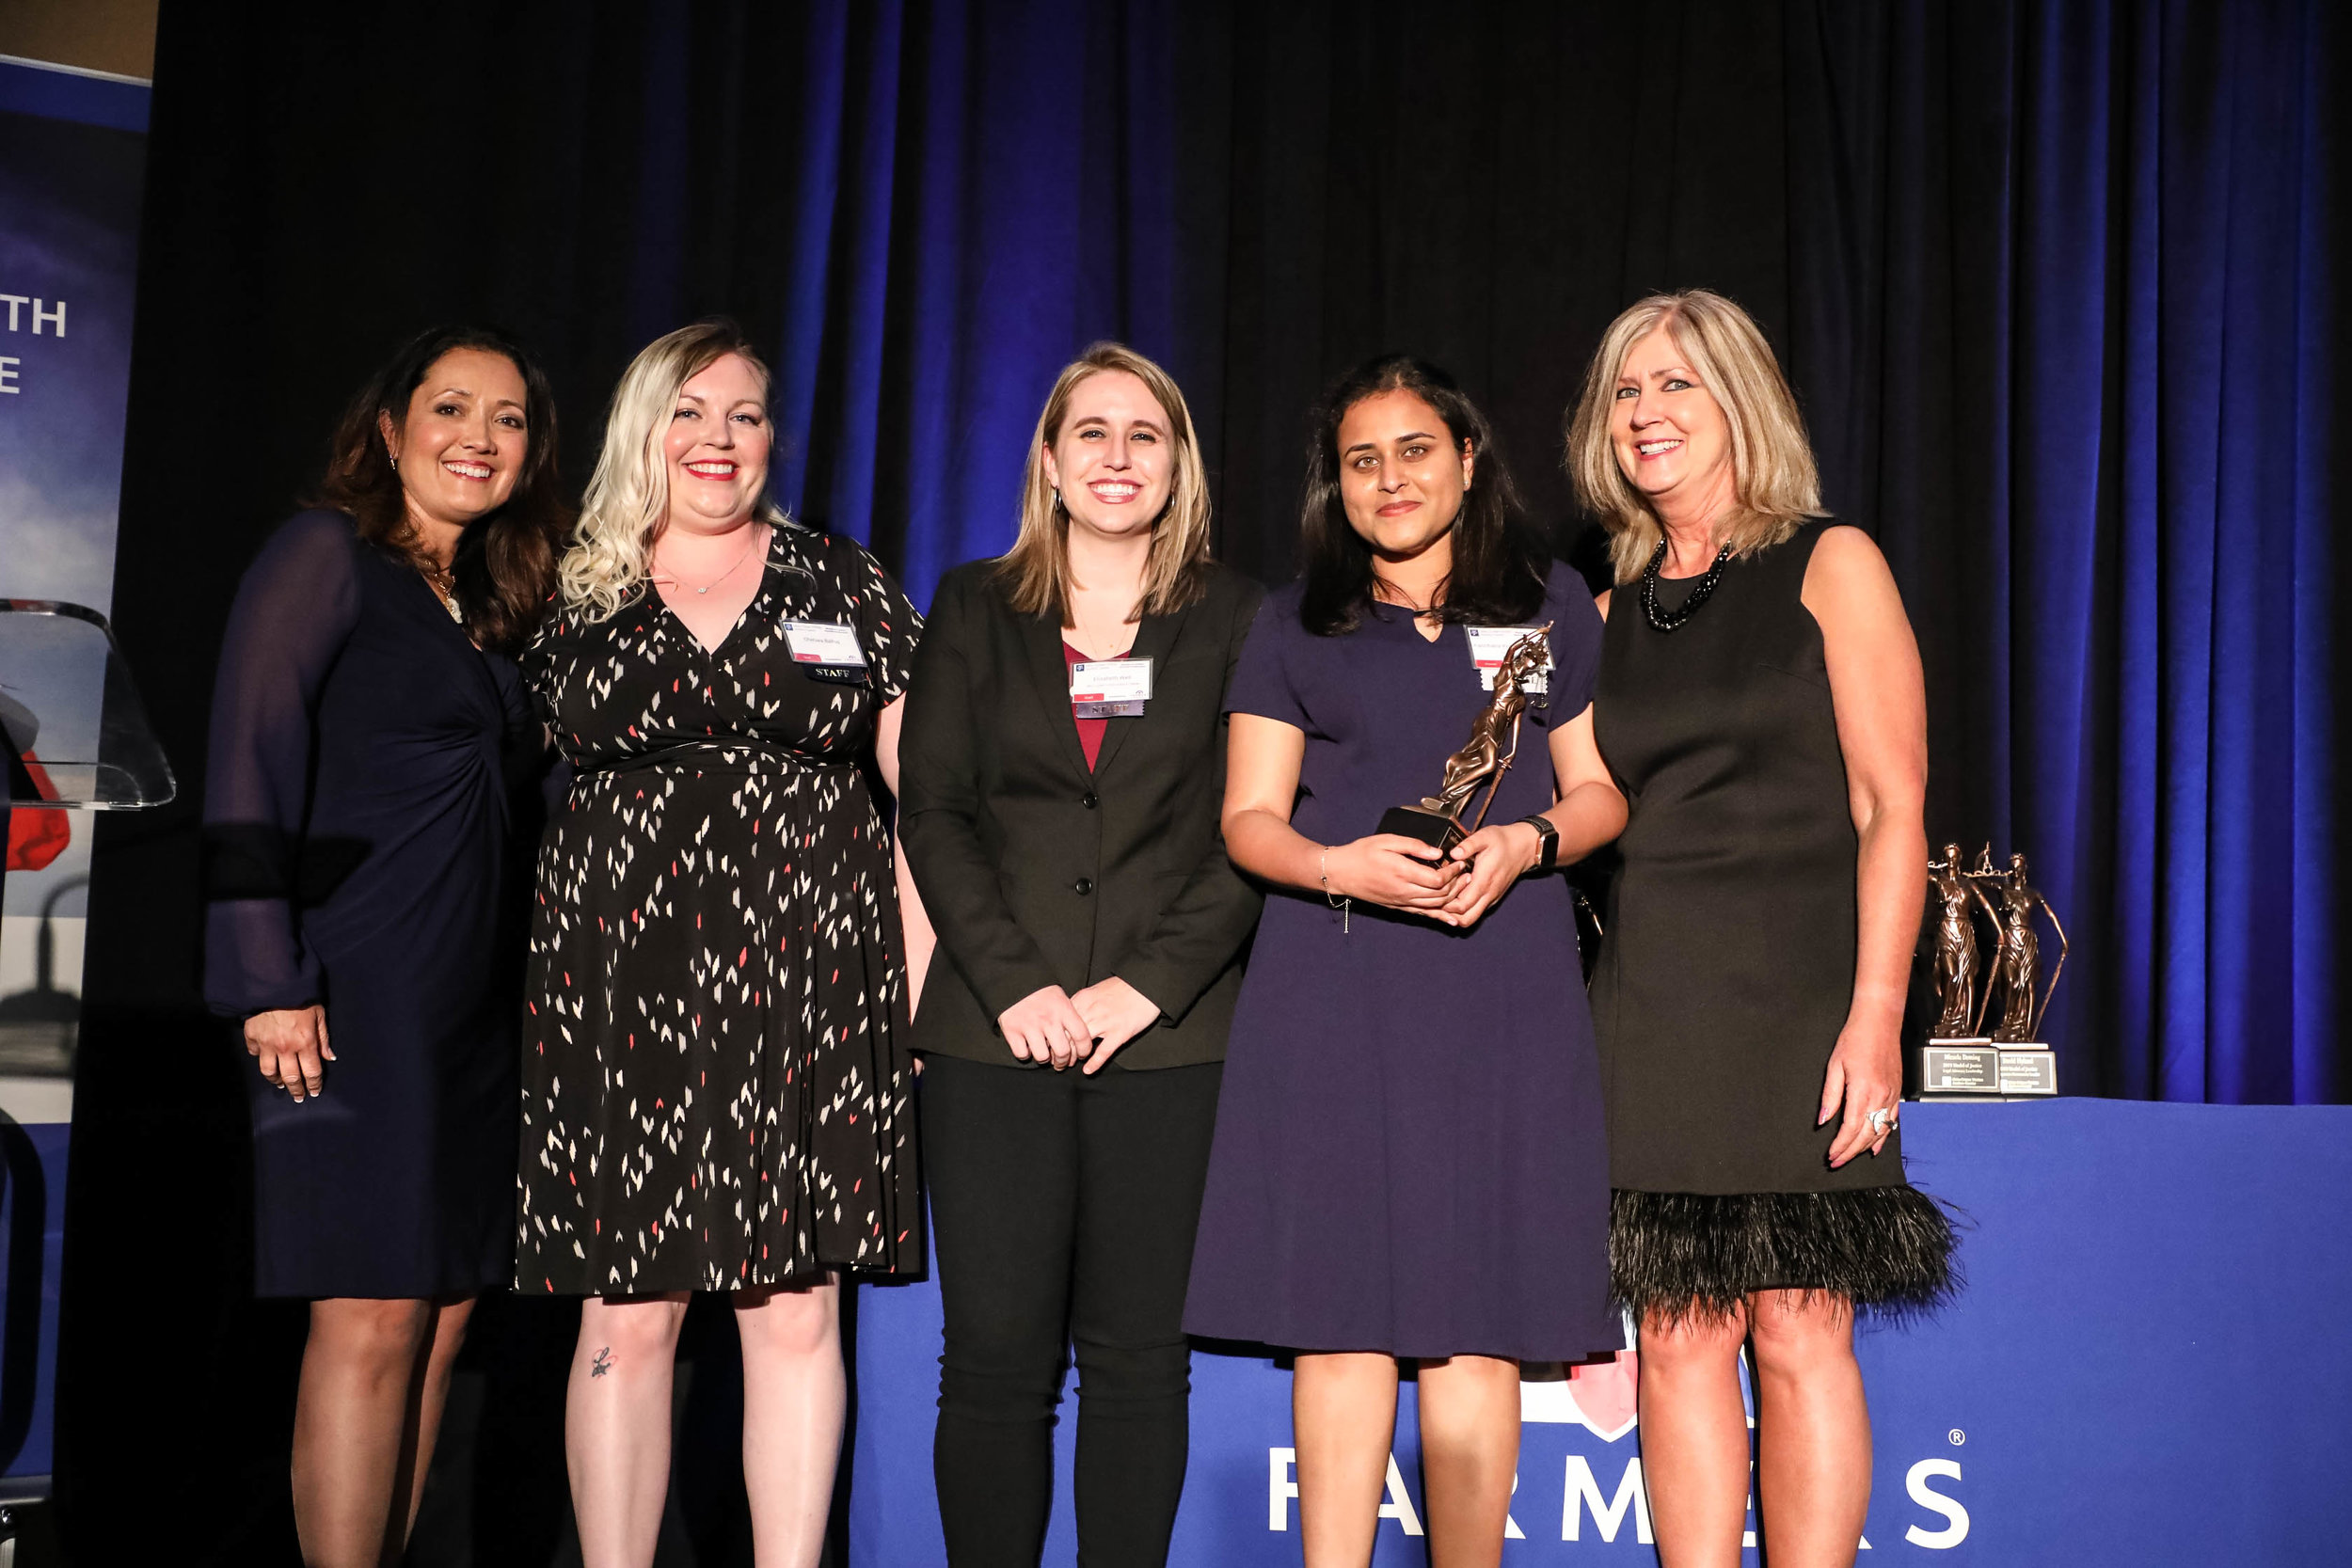 Kanchanarani Krishnamoorthy - Volunteer of the Year, OCVJCNominated by: Chelsea Balhaj